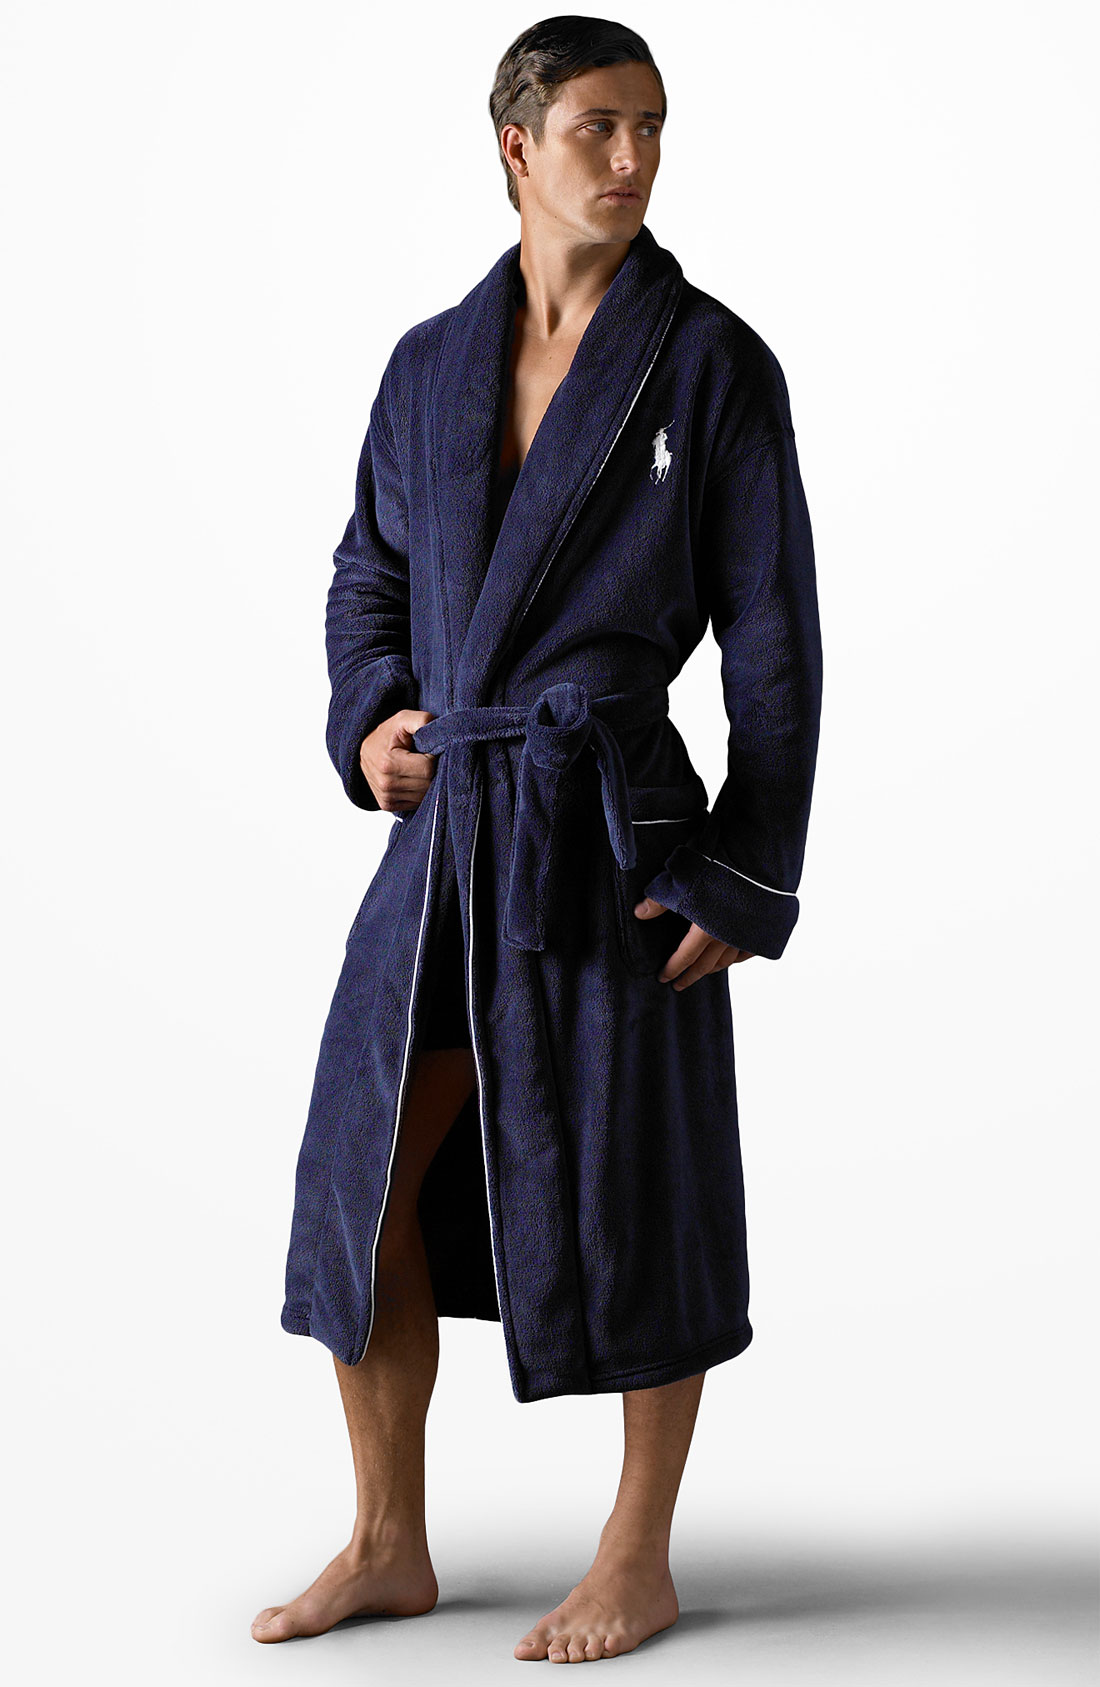 lyst polo ralph lauren microfiber robe in blue for men. Black Bedroom Furniture Sets. Home Design Ideas